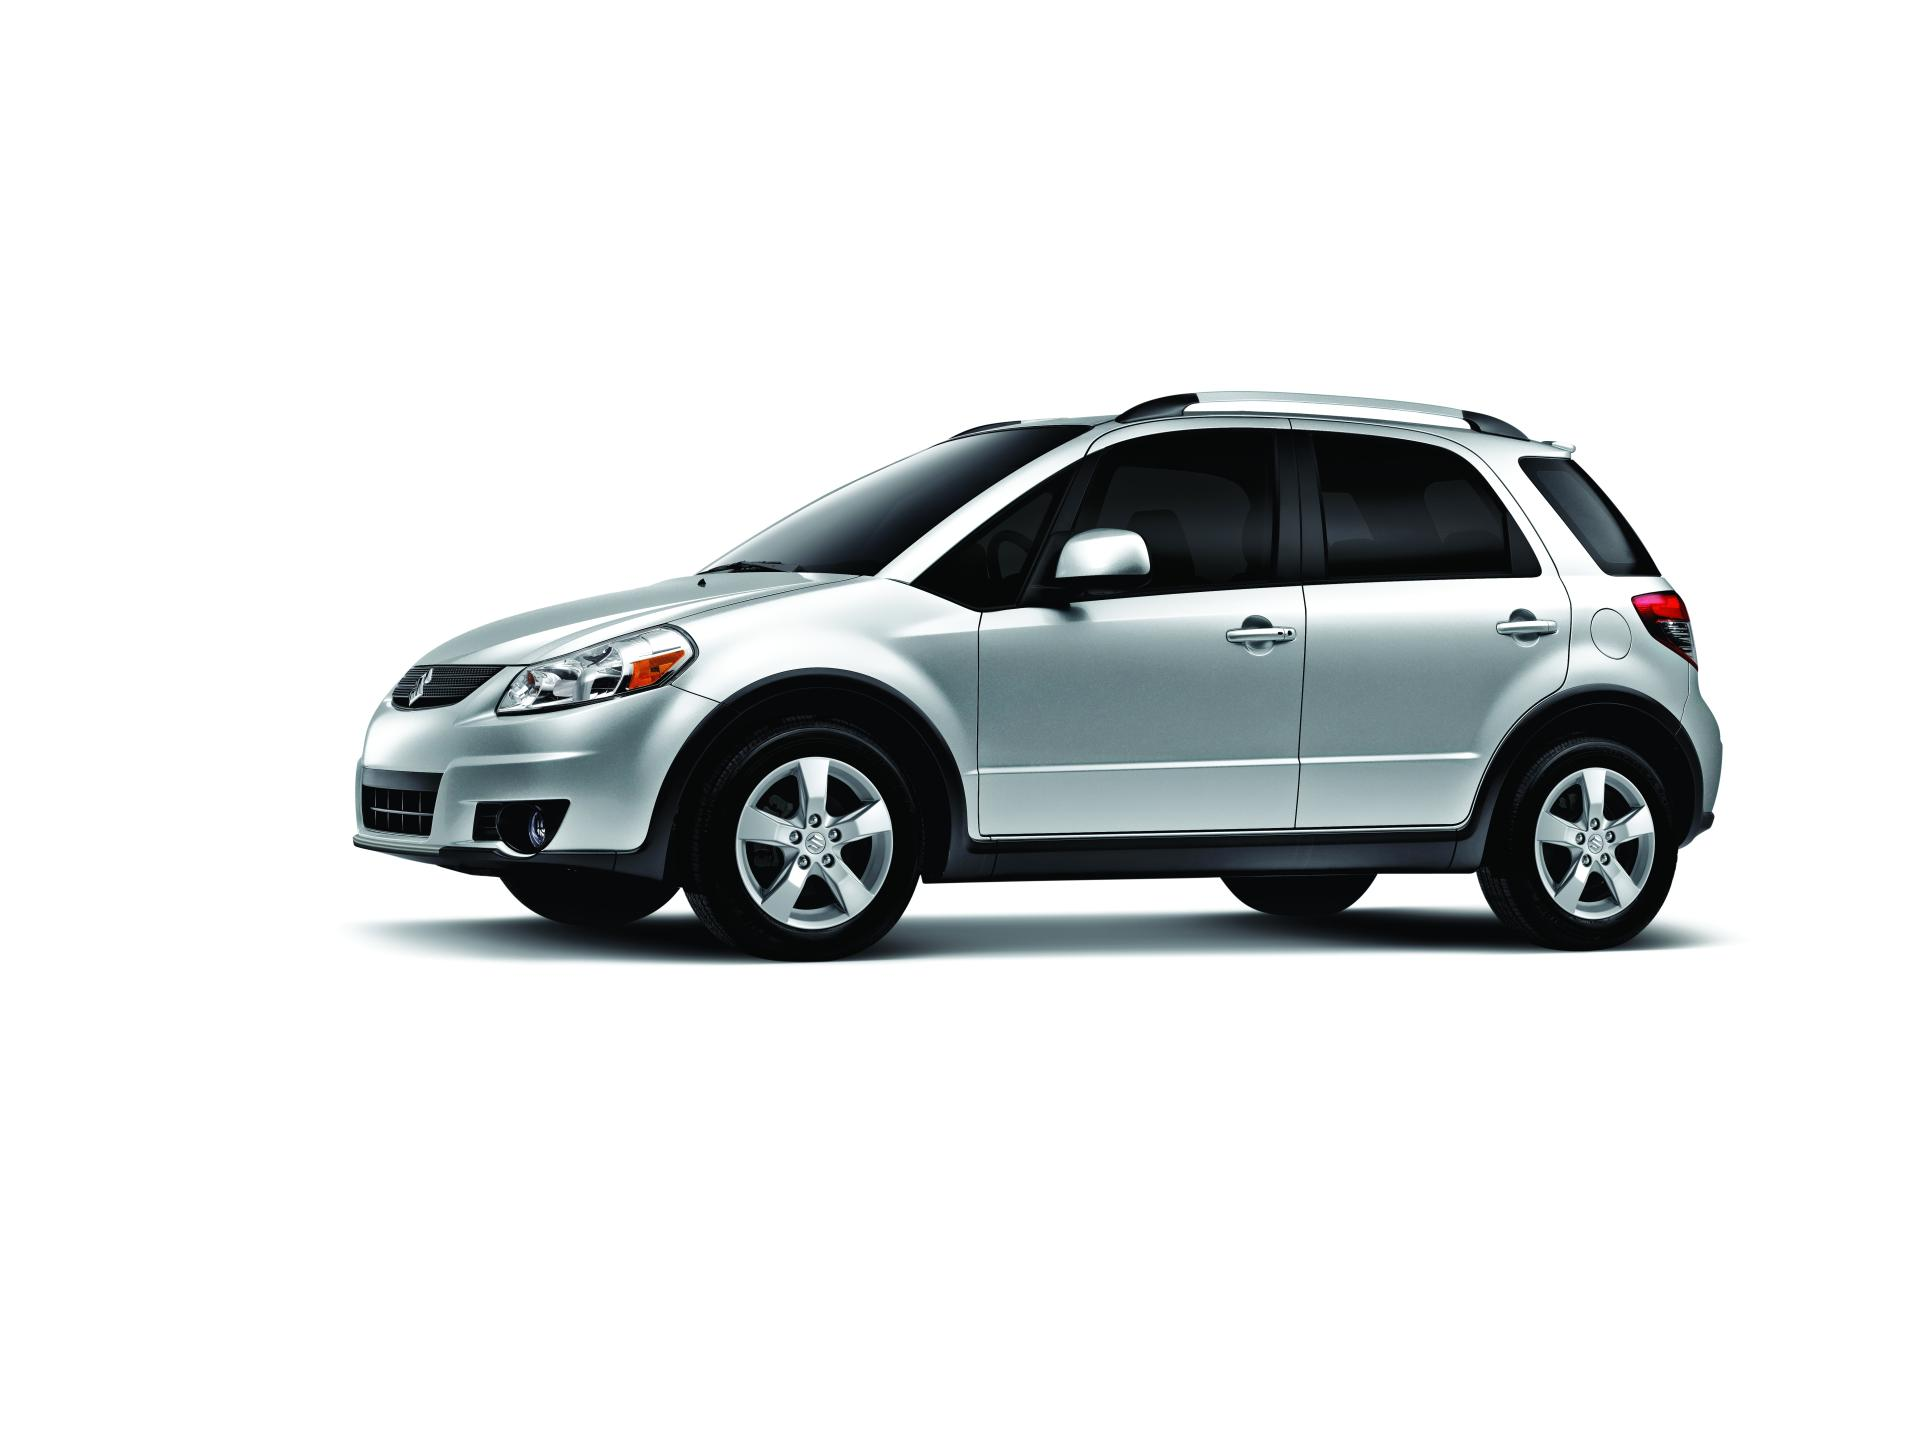 2012 suzuki sx4 crossover news and information. Black Bedroom Furniture Sets. Home Design Ideas